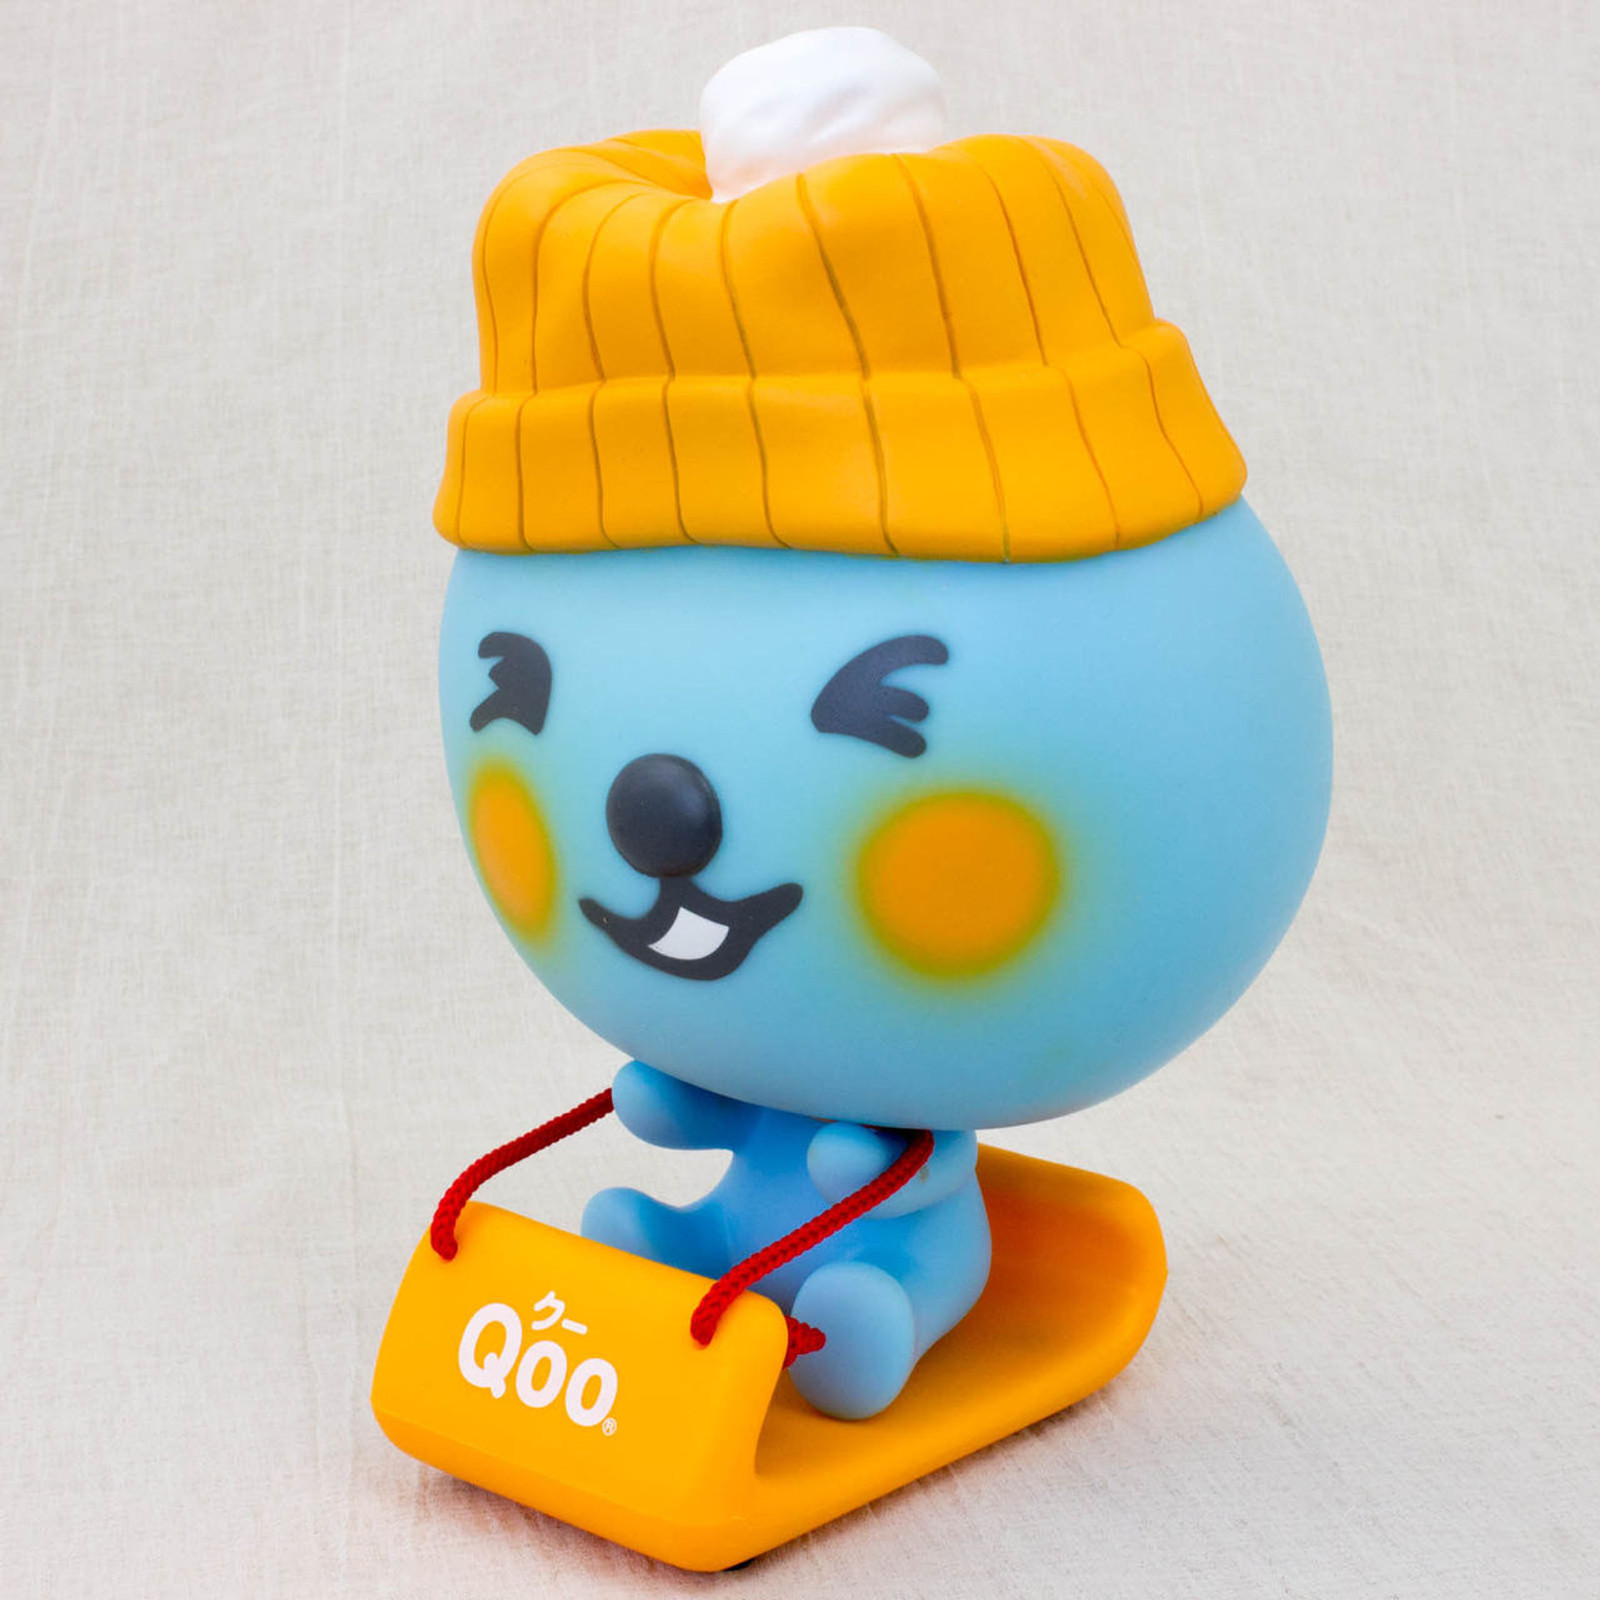 QOO Knit Hat with Snow Sled Figure Coca-Cola Yamazaki Japan Limited Product